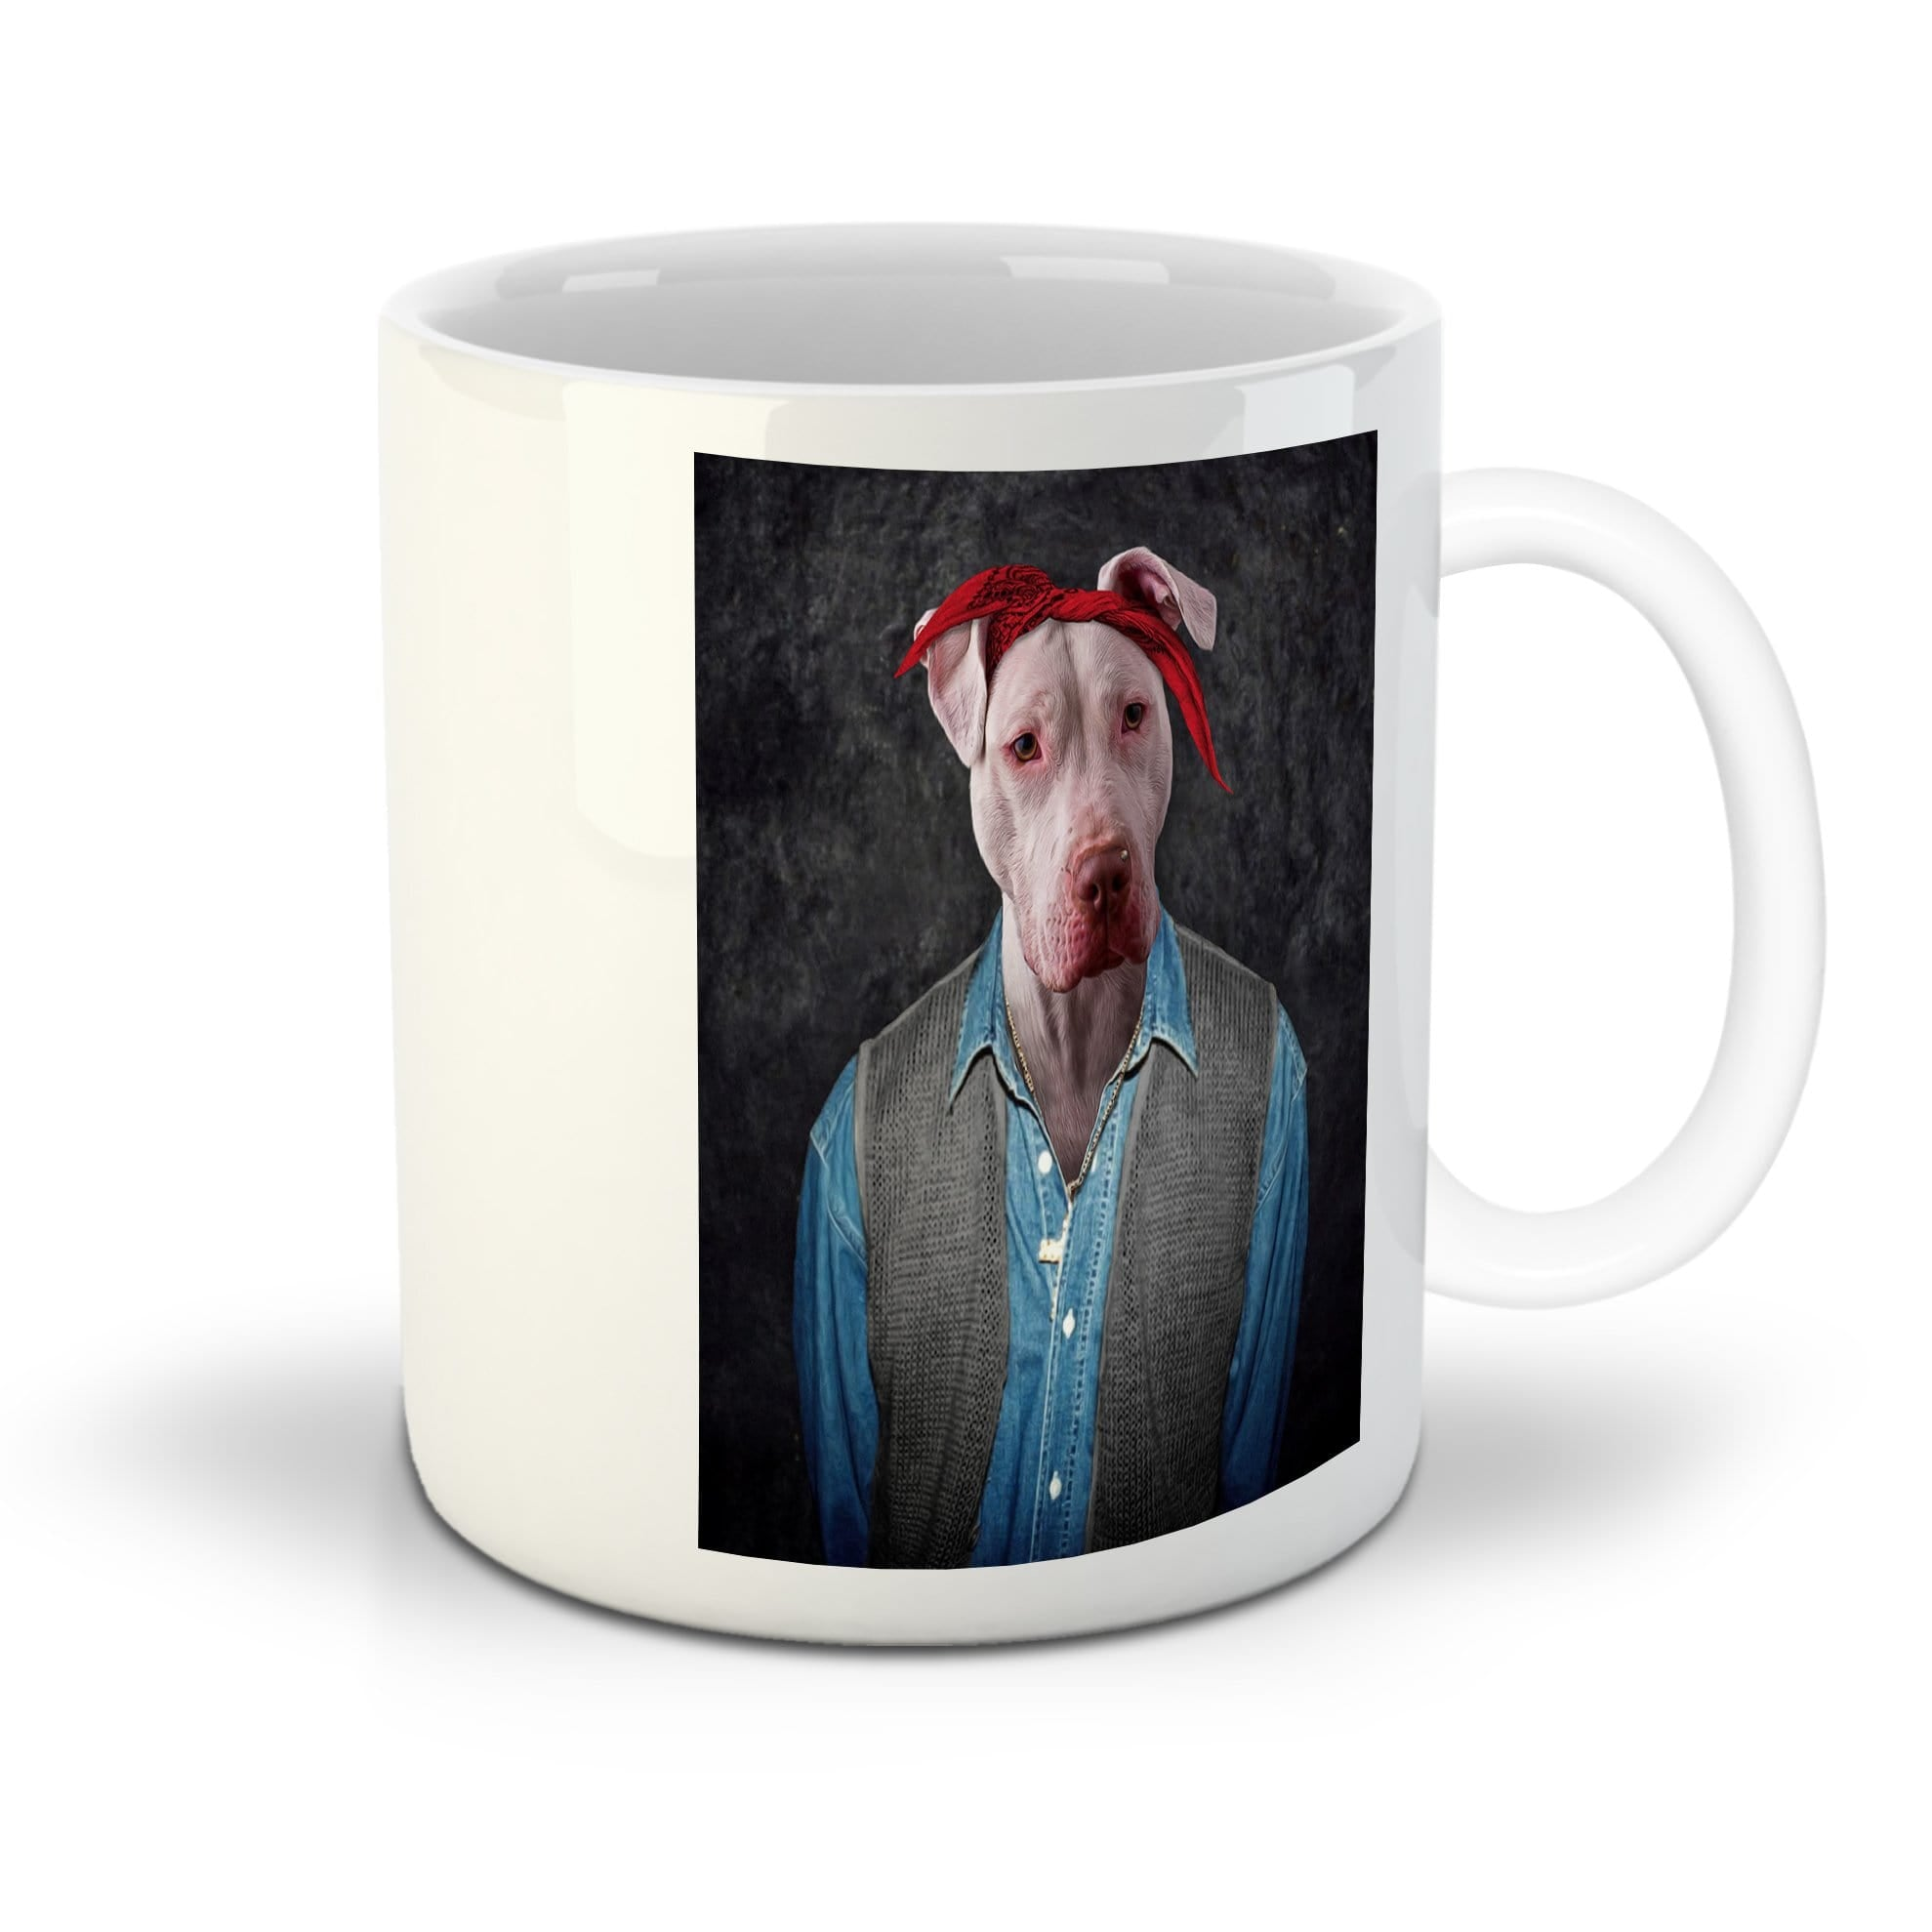 '2Pac Dogkur' Personalized Pet Mug